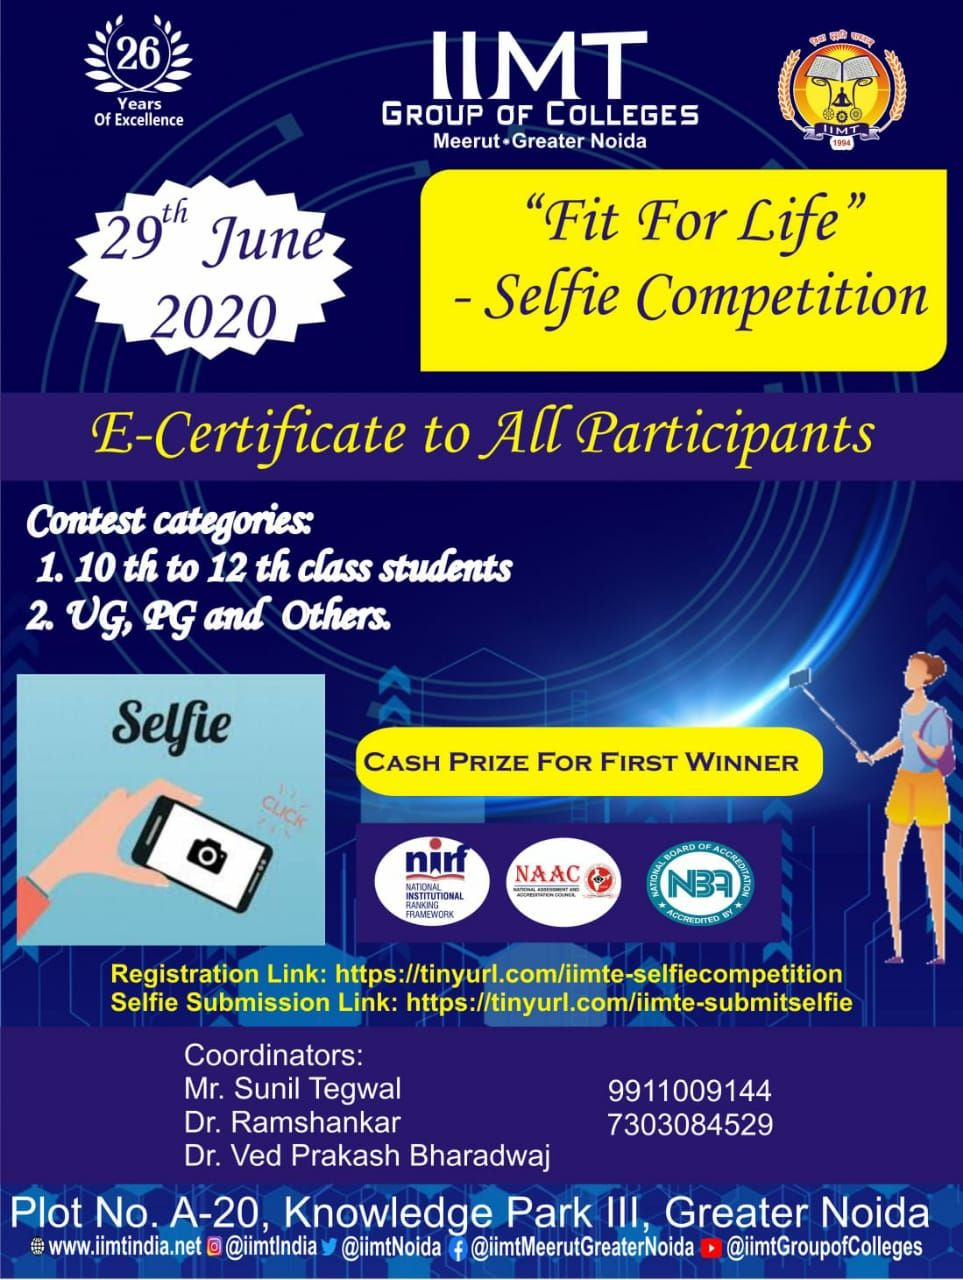 Iimt group of colleges is organizing fit for life